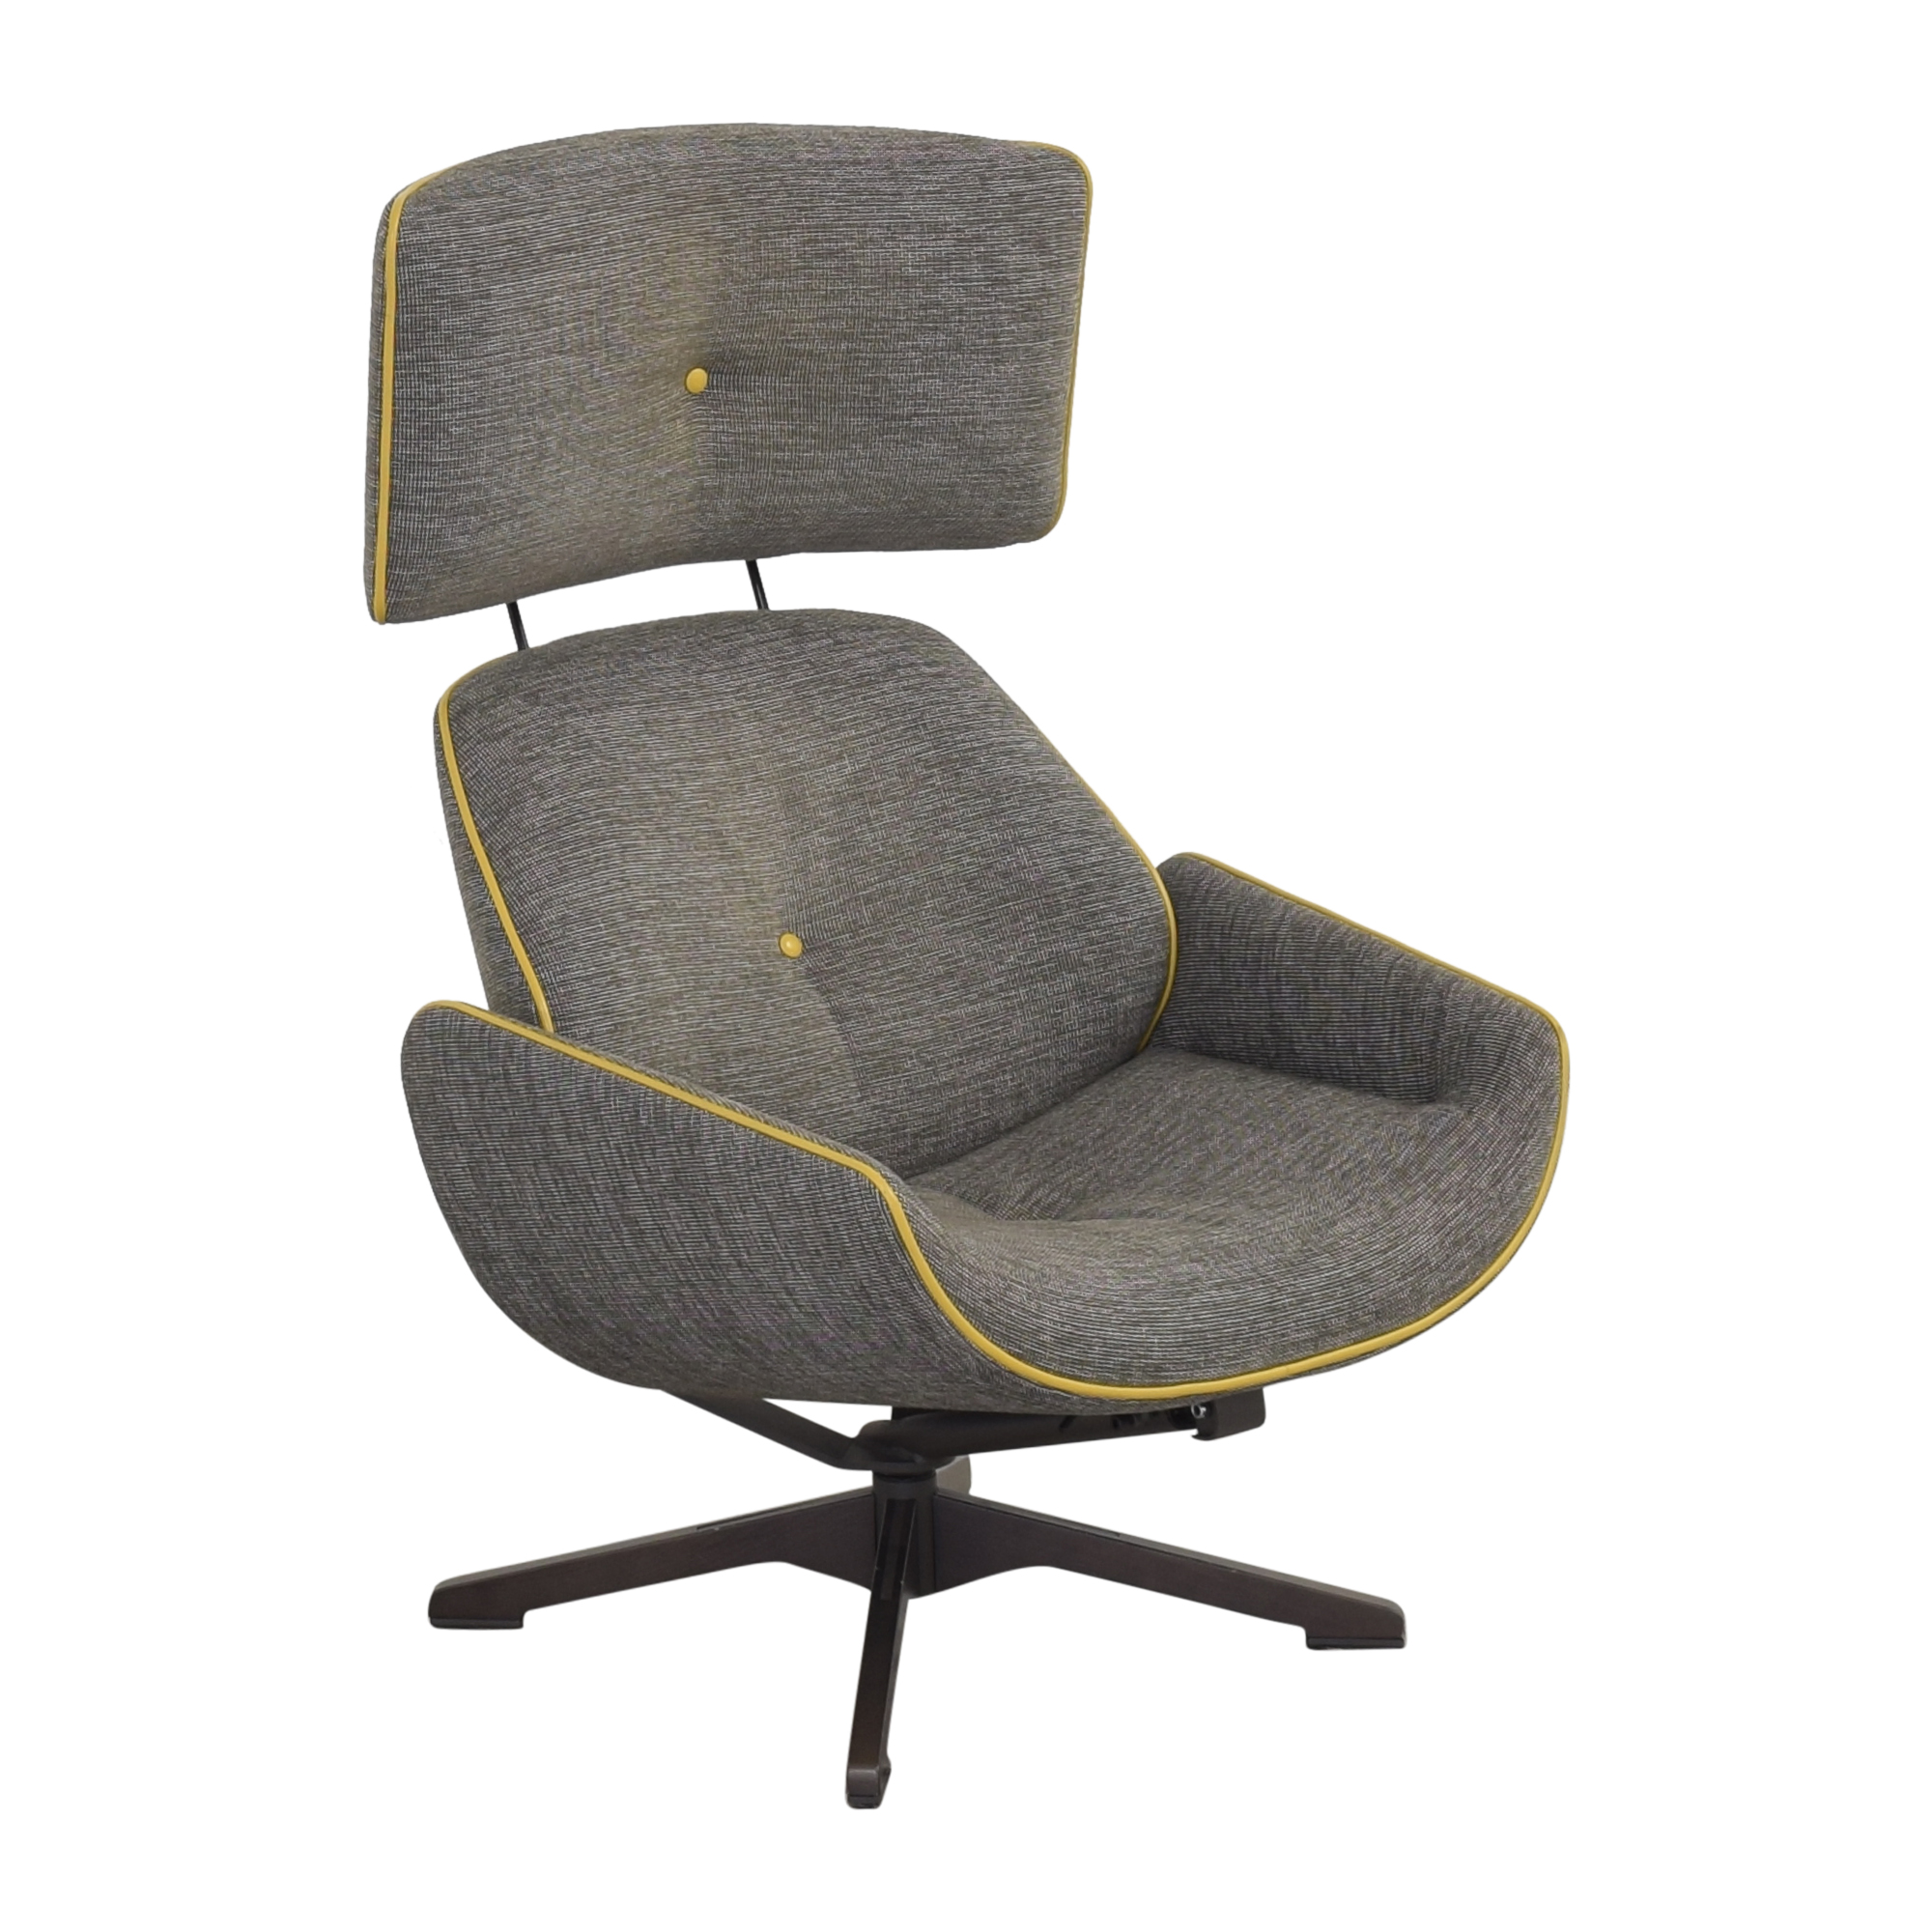 buy Roche Bobois Quiet Life Armchair and Footstool Roche Bobois Chairs